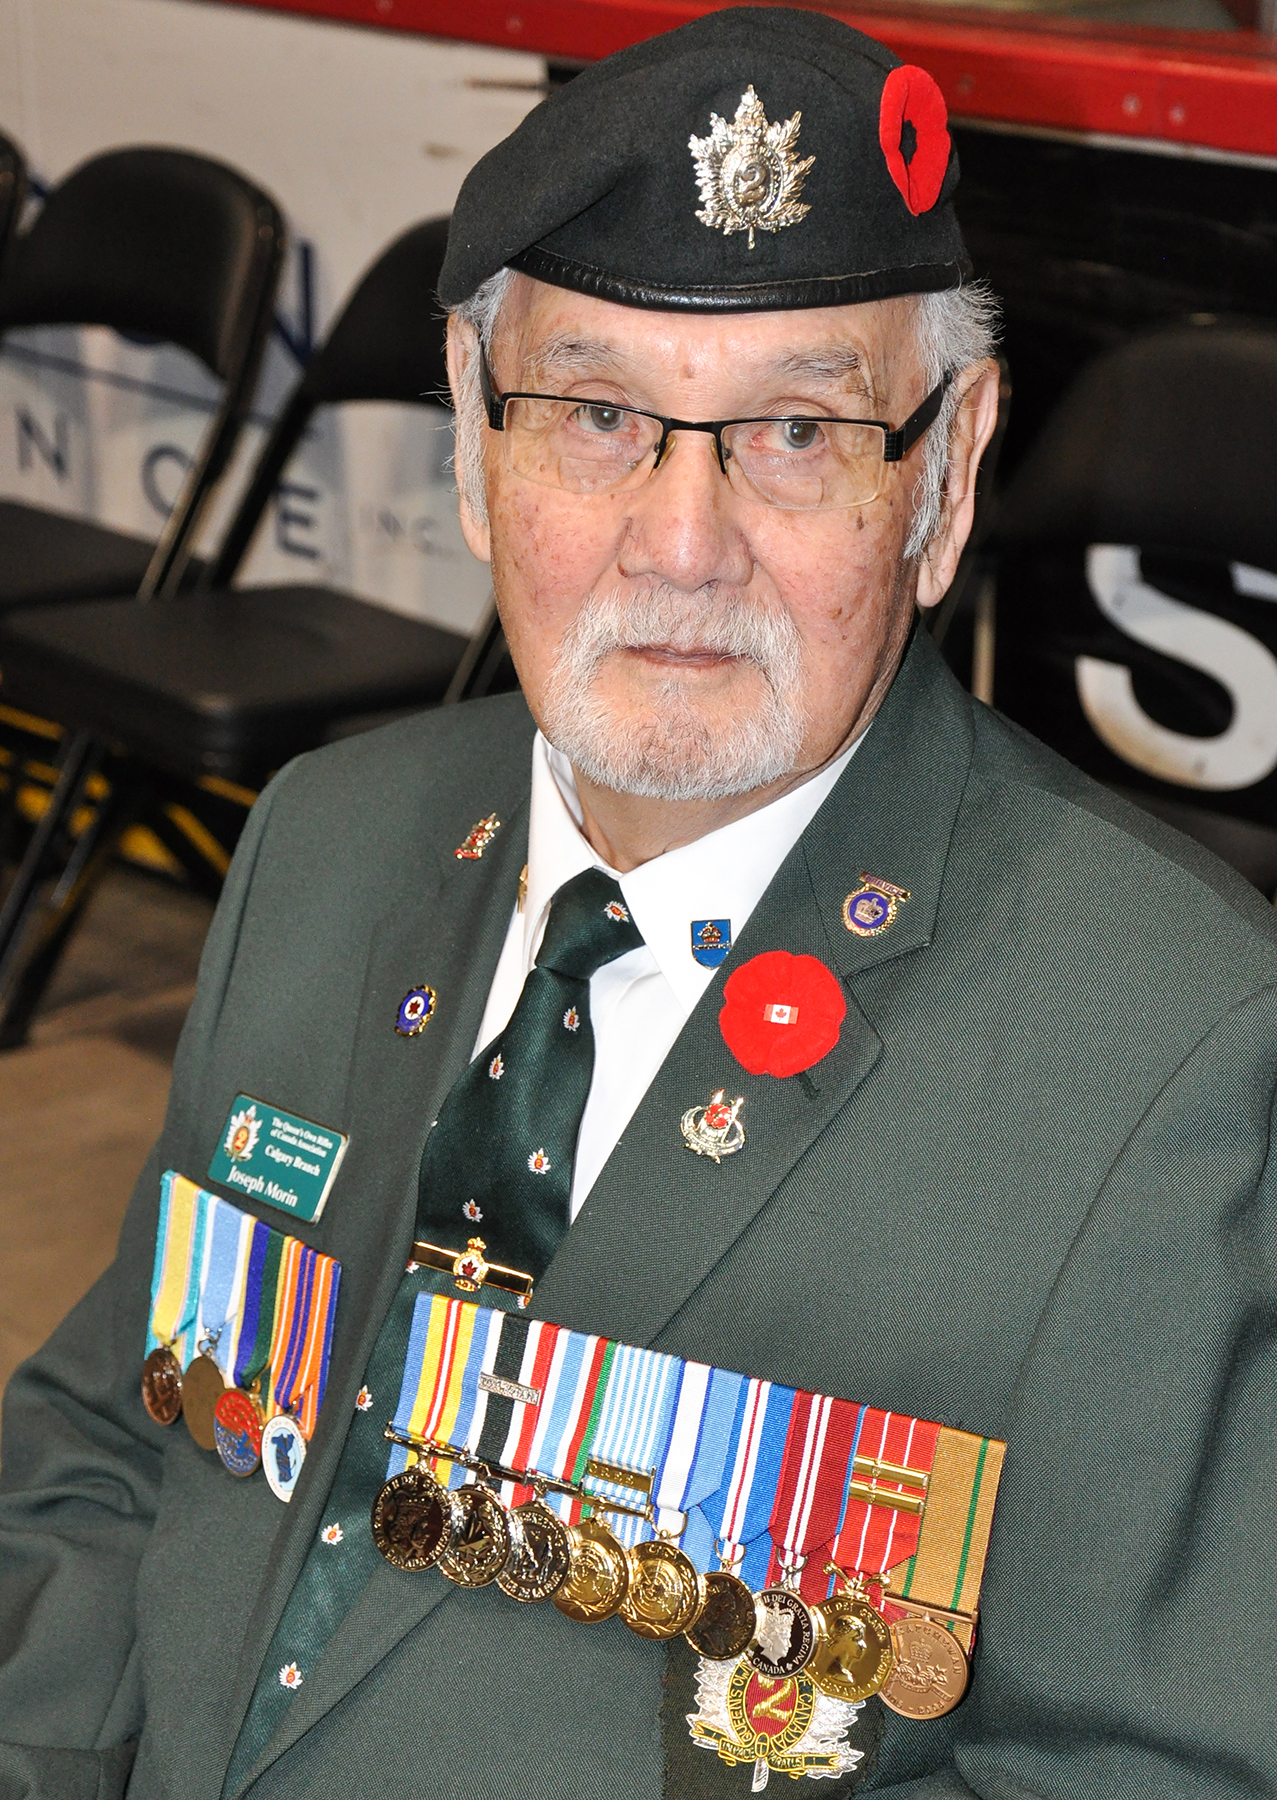 Master Corporal (retired) Joseph Morin takes a moment to reflect before the 15 Wing Remembrance Day ceremony in Moose Jaw, Saskatchewan, on November 11, 2015. PHOTO: Lieutenant Jenn Halliwell